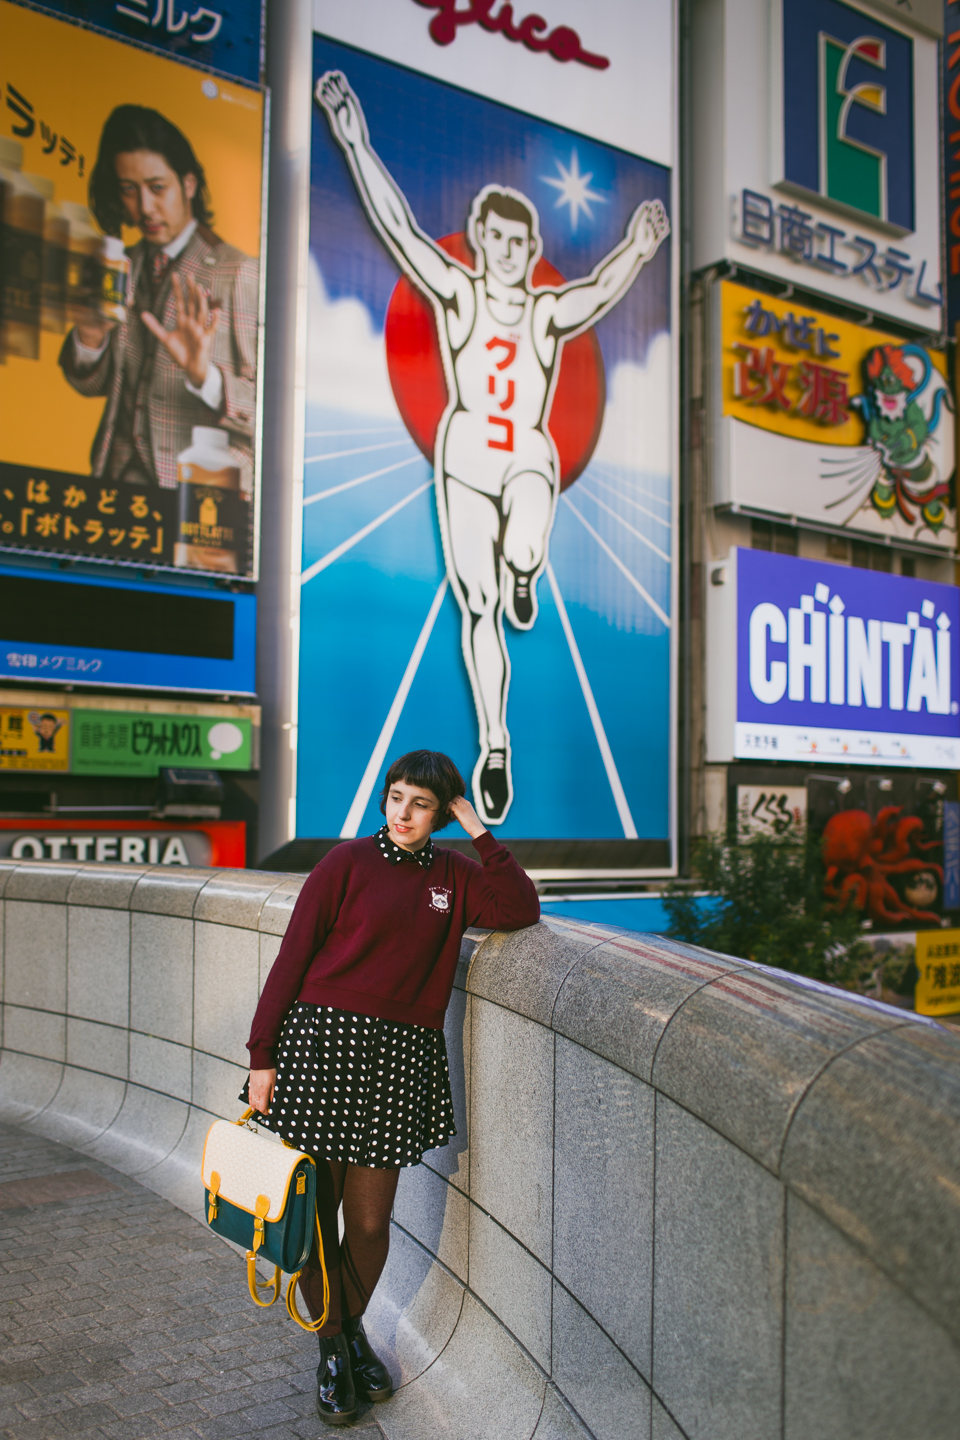 Glico sign Osaka - The cat, you and us